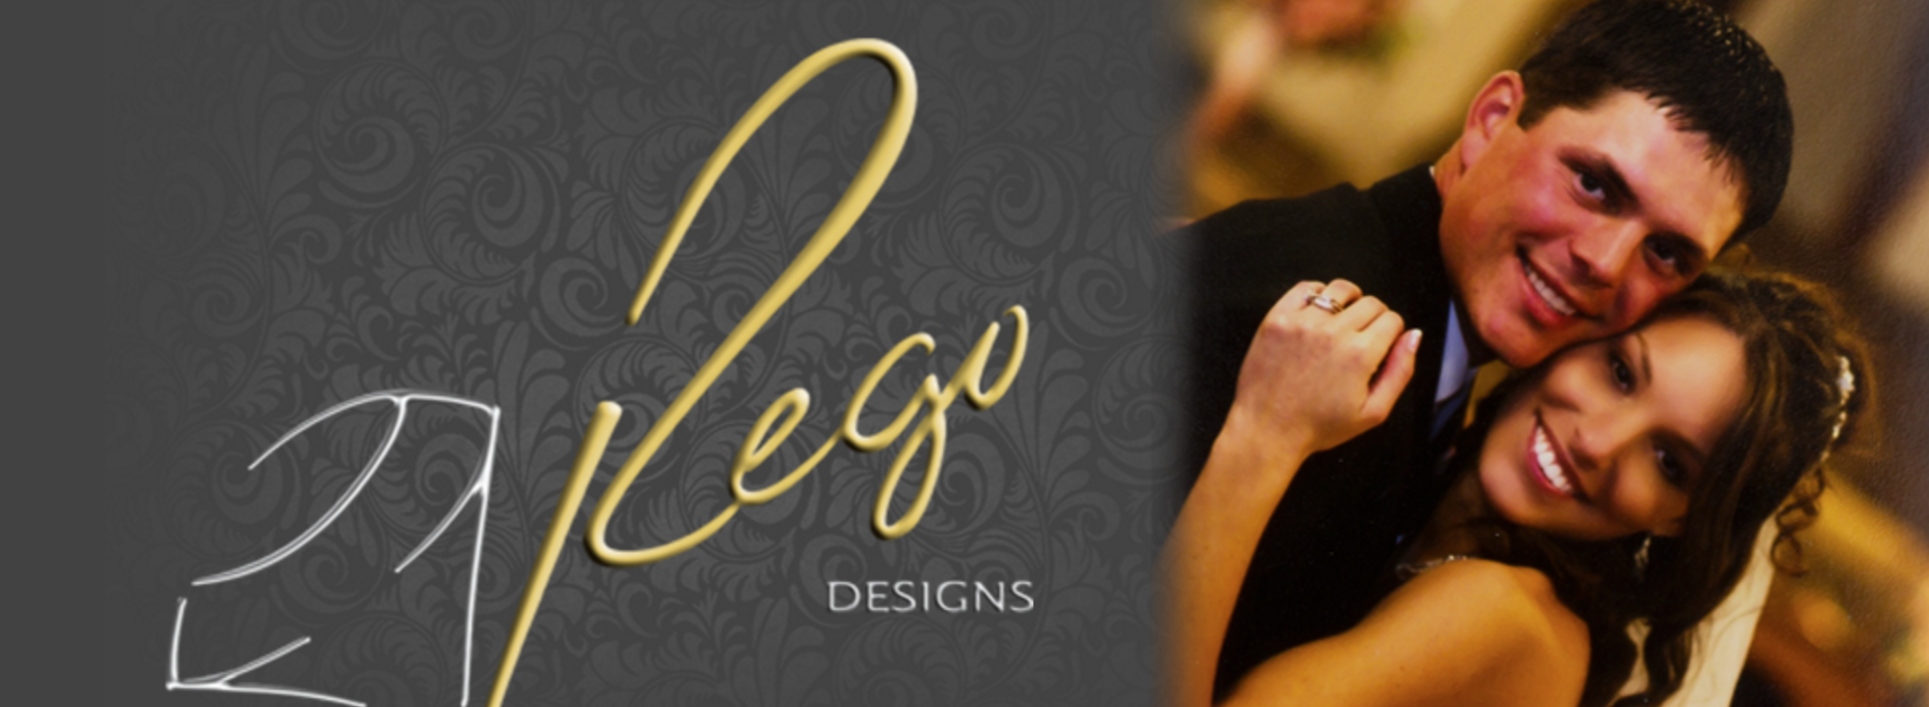 Williams Jewelers Rego Designs